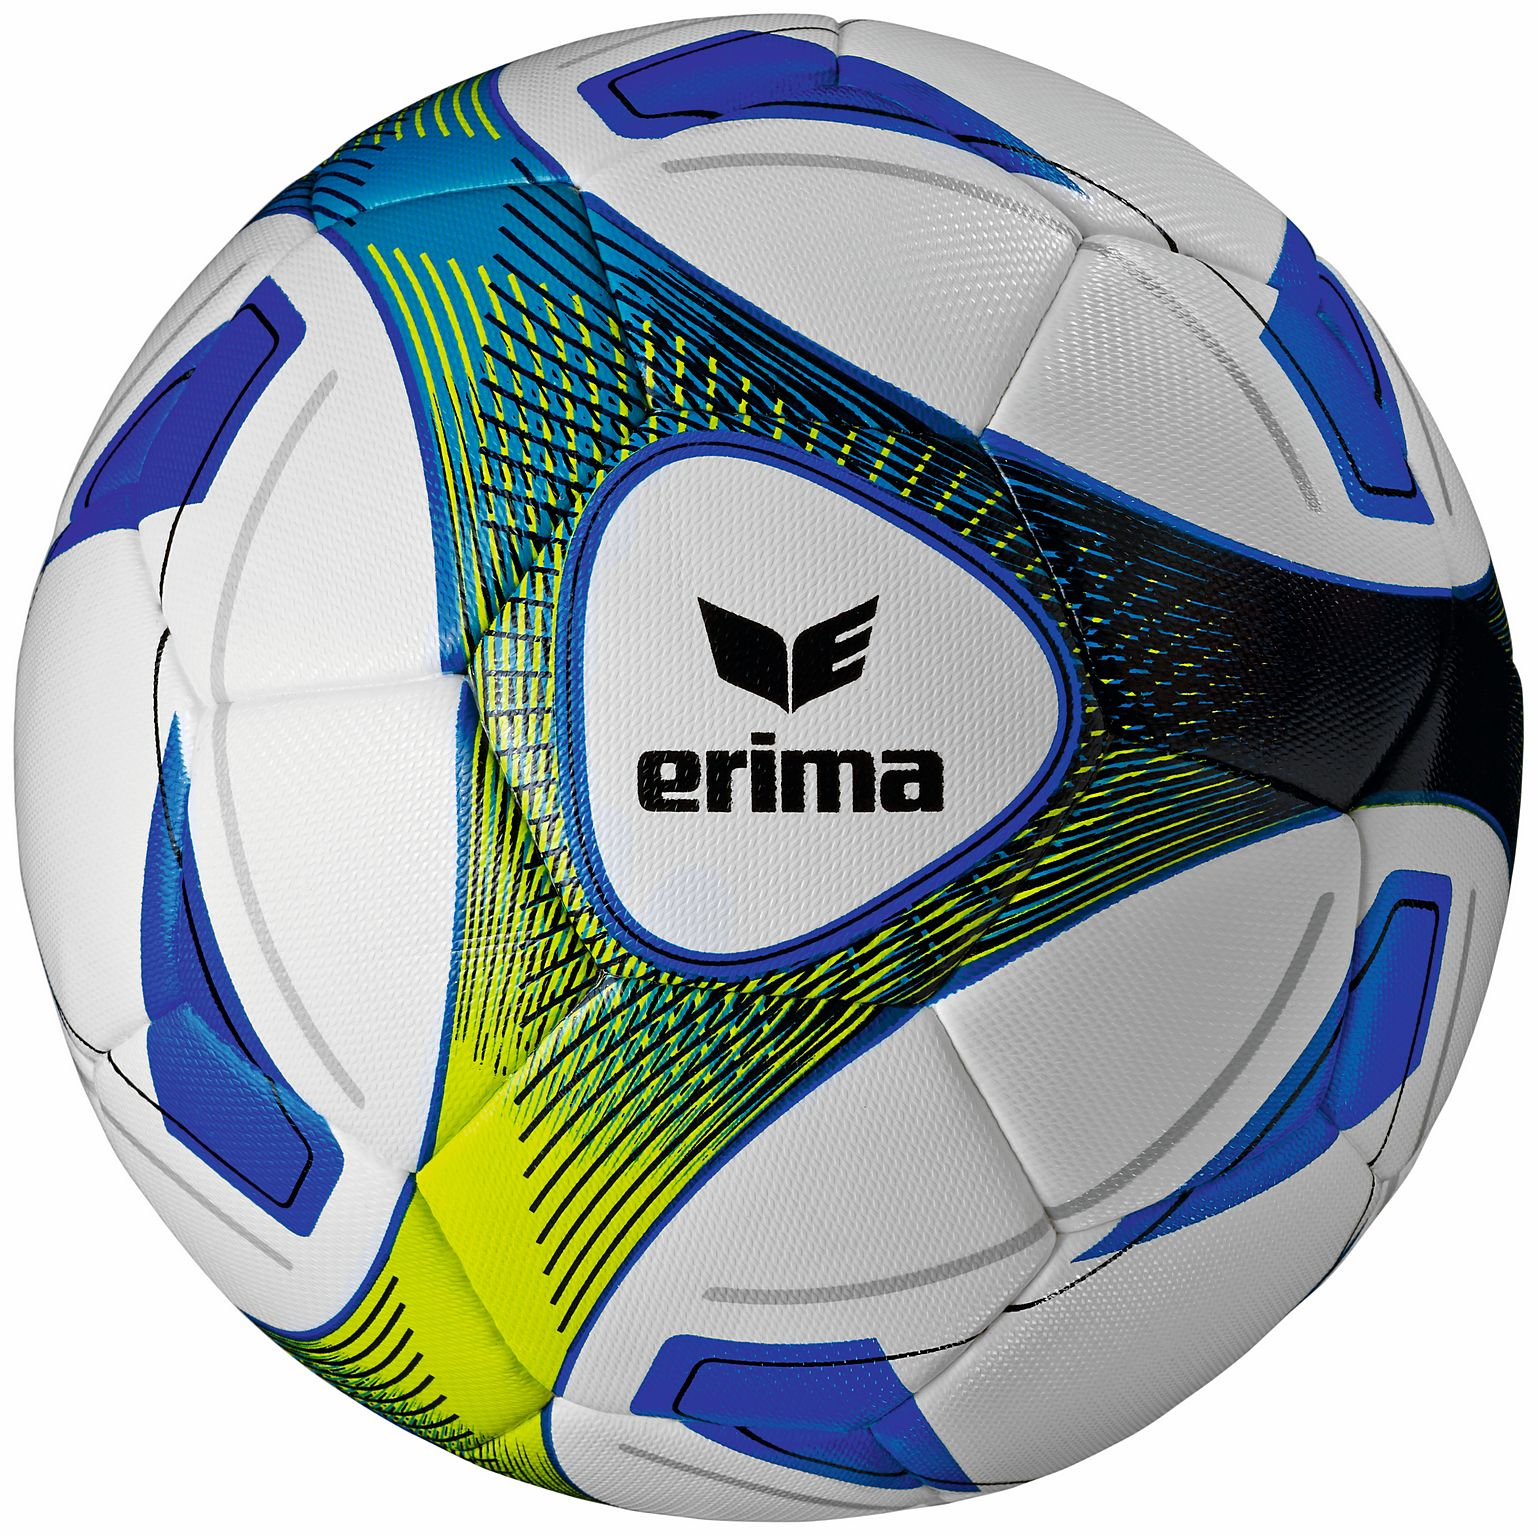 Fußball ERIMA Hybrid Training, royal/lime, 5